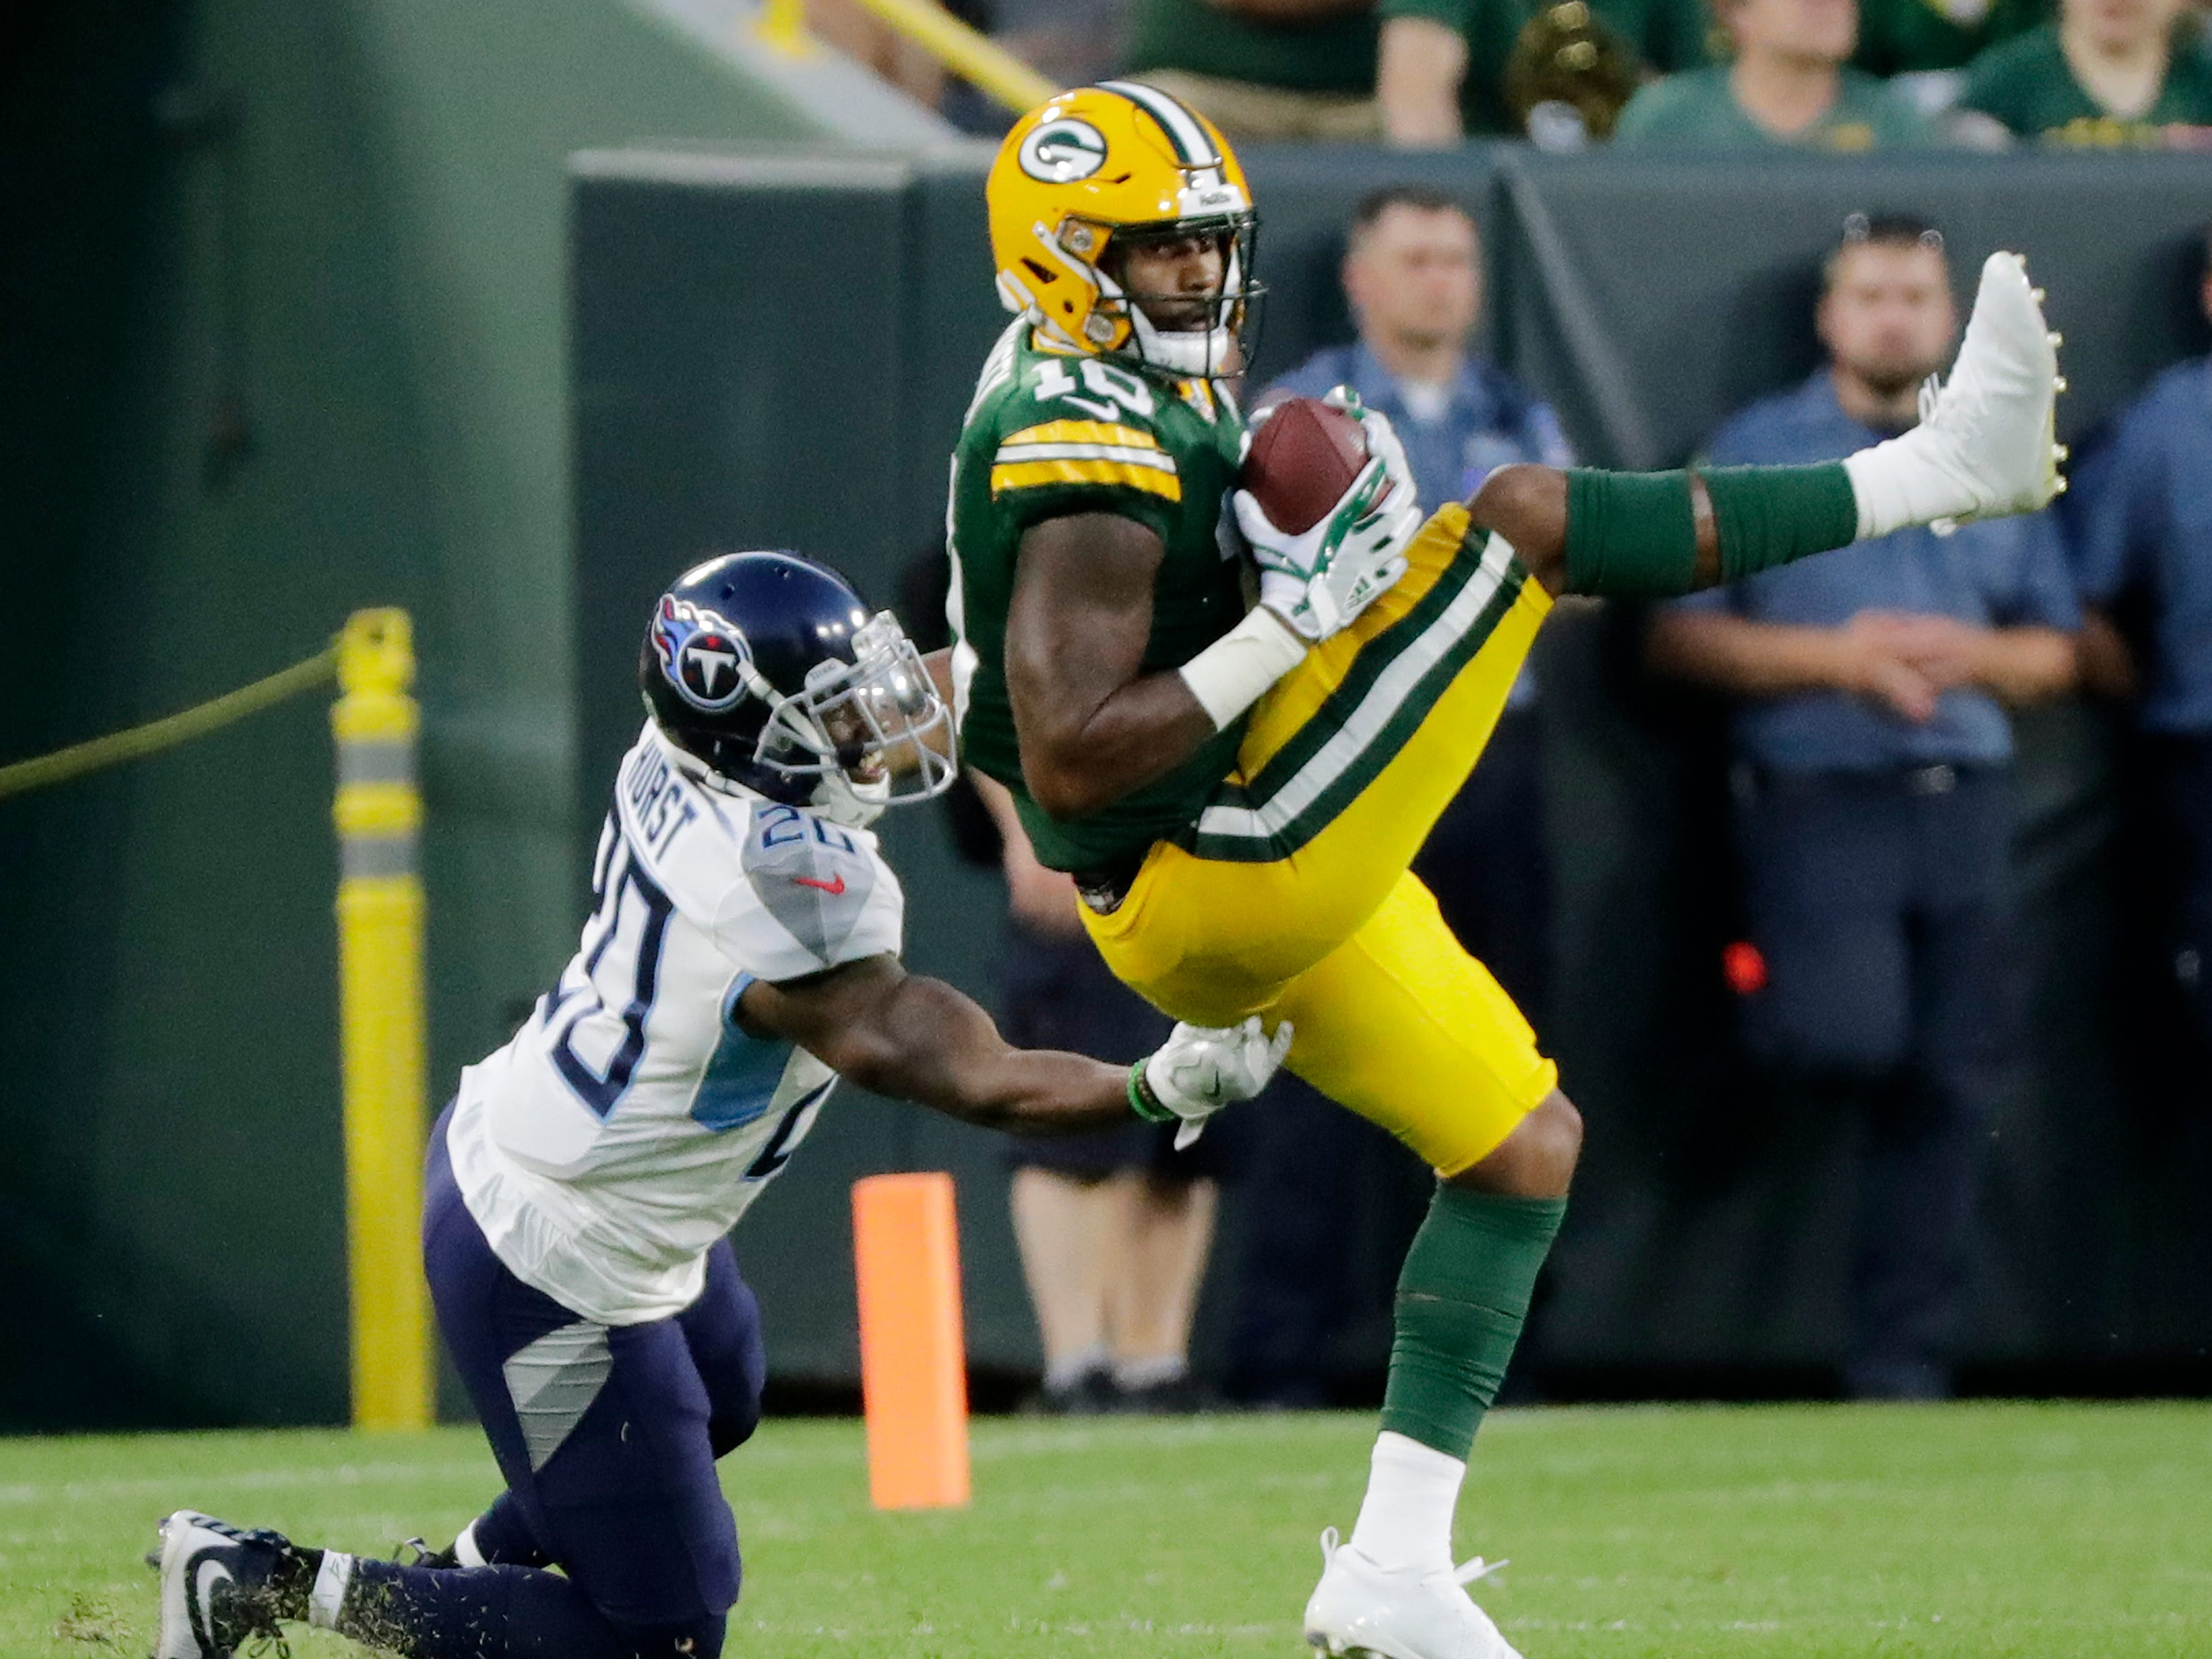 Green Bay Packers wide receiver DeAngelo Yancey (10) catches a pass against the Tennessee Titans in an NFL preseason game at Lambeau Field on Thursday, August 9, 2018 in Green Bay, Wis.